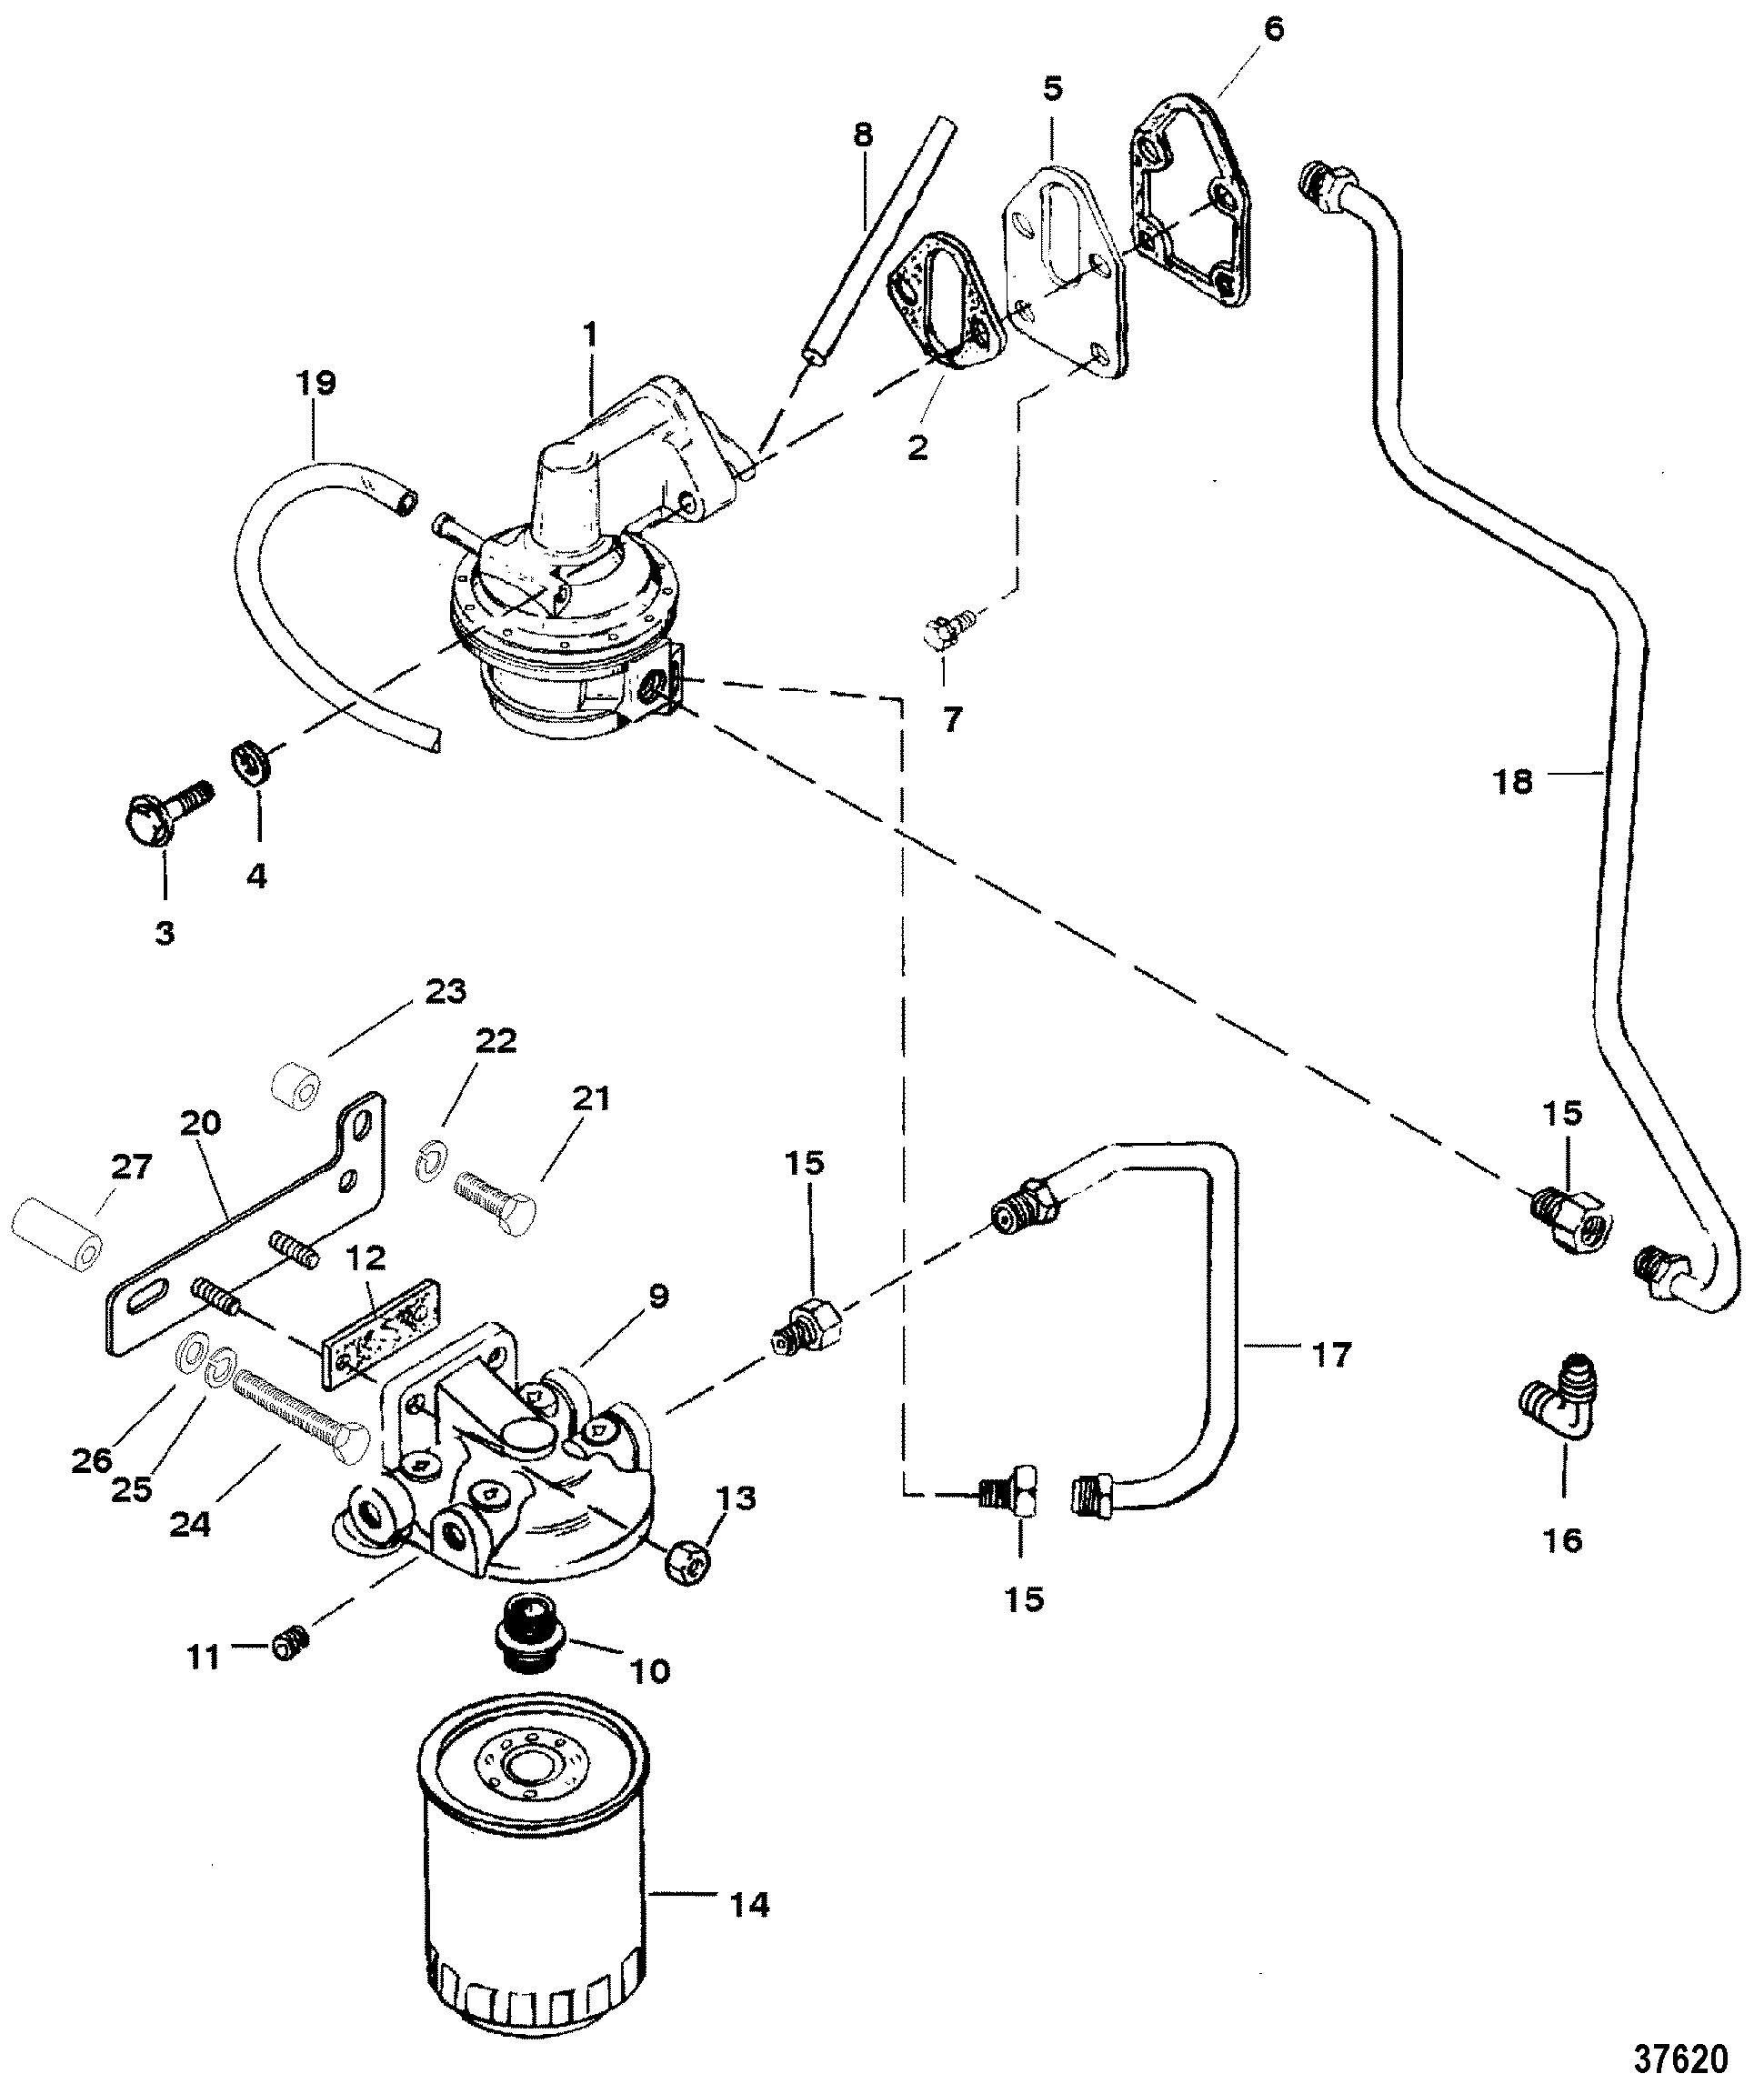 chevy 350 mechanical fuel pump diagram with Omc 350 5 7 Fuel Pump on Engine Specifications additionally P 0996b43f80388a7f likewise Engine Serial Number Location On Mercruiser likewise 1966 Mustang Wiring Diagrams additionally 4 3 Chevy Engine Push Rod Diagram.